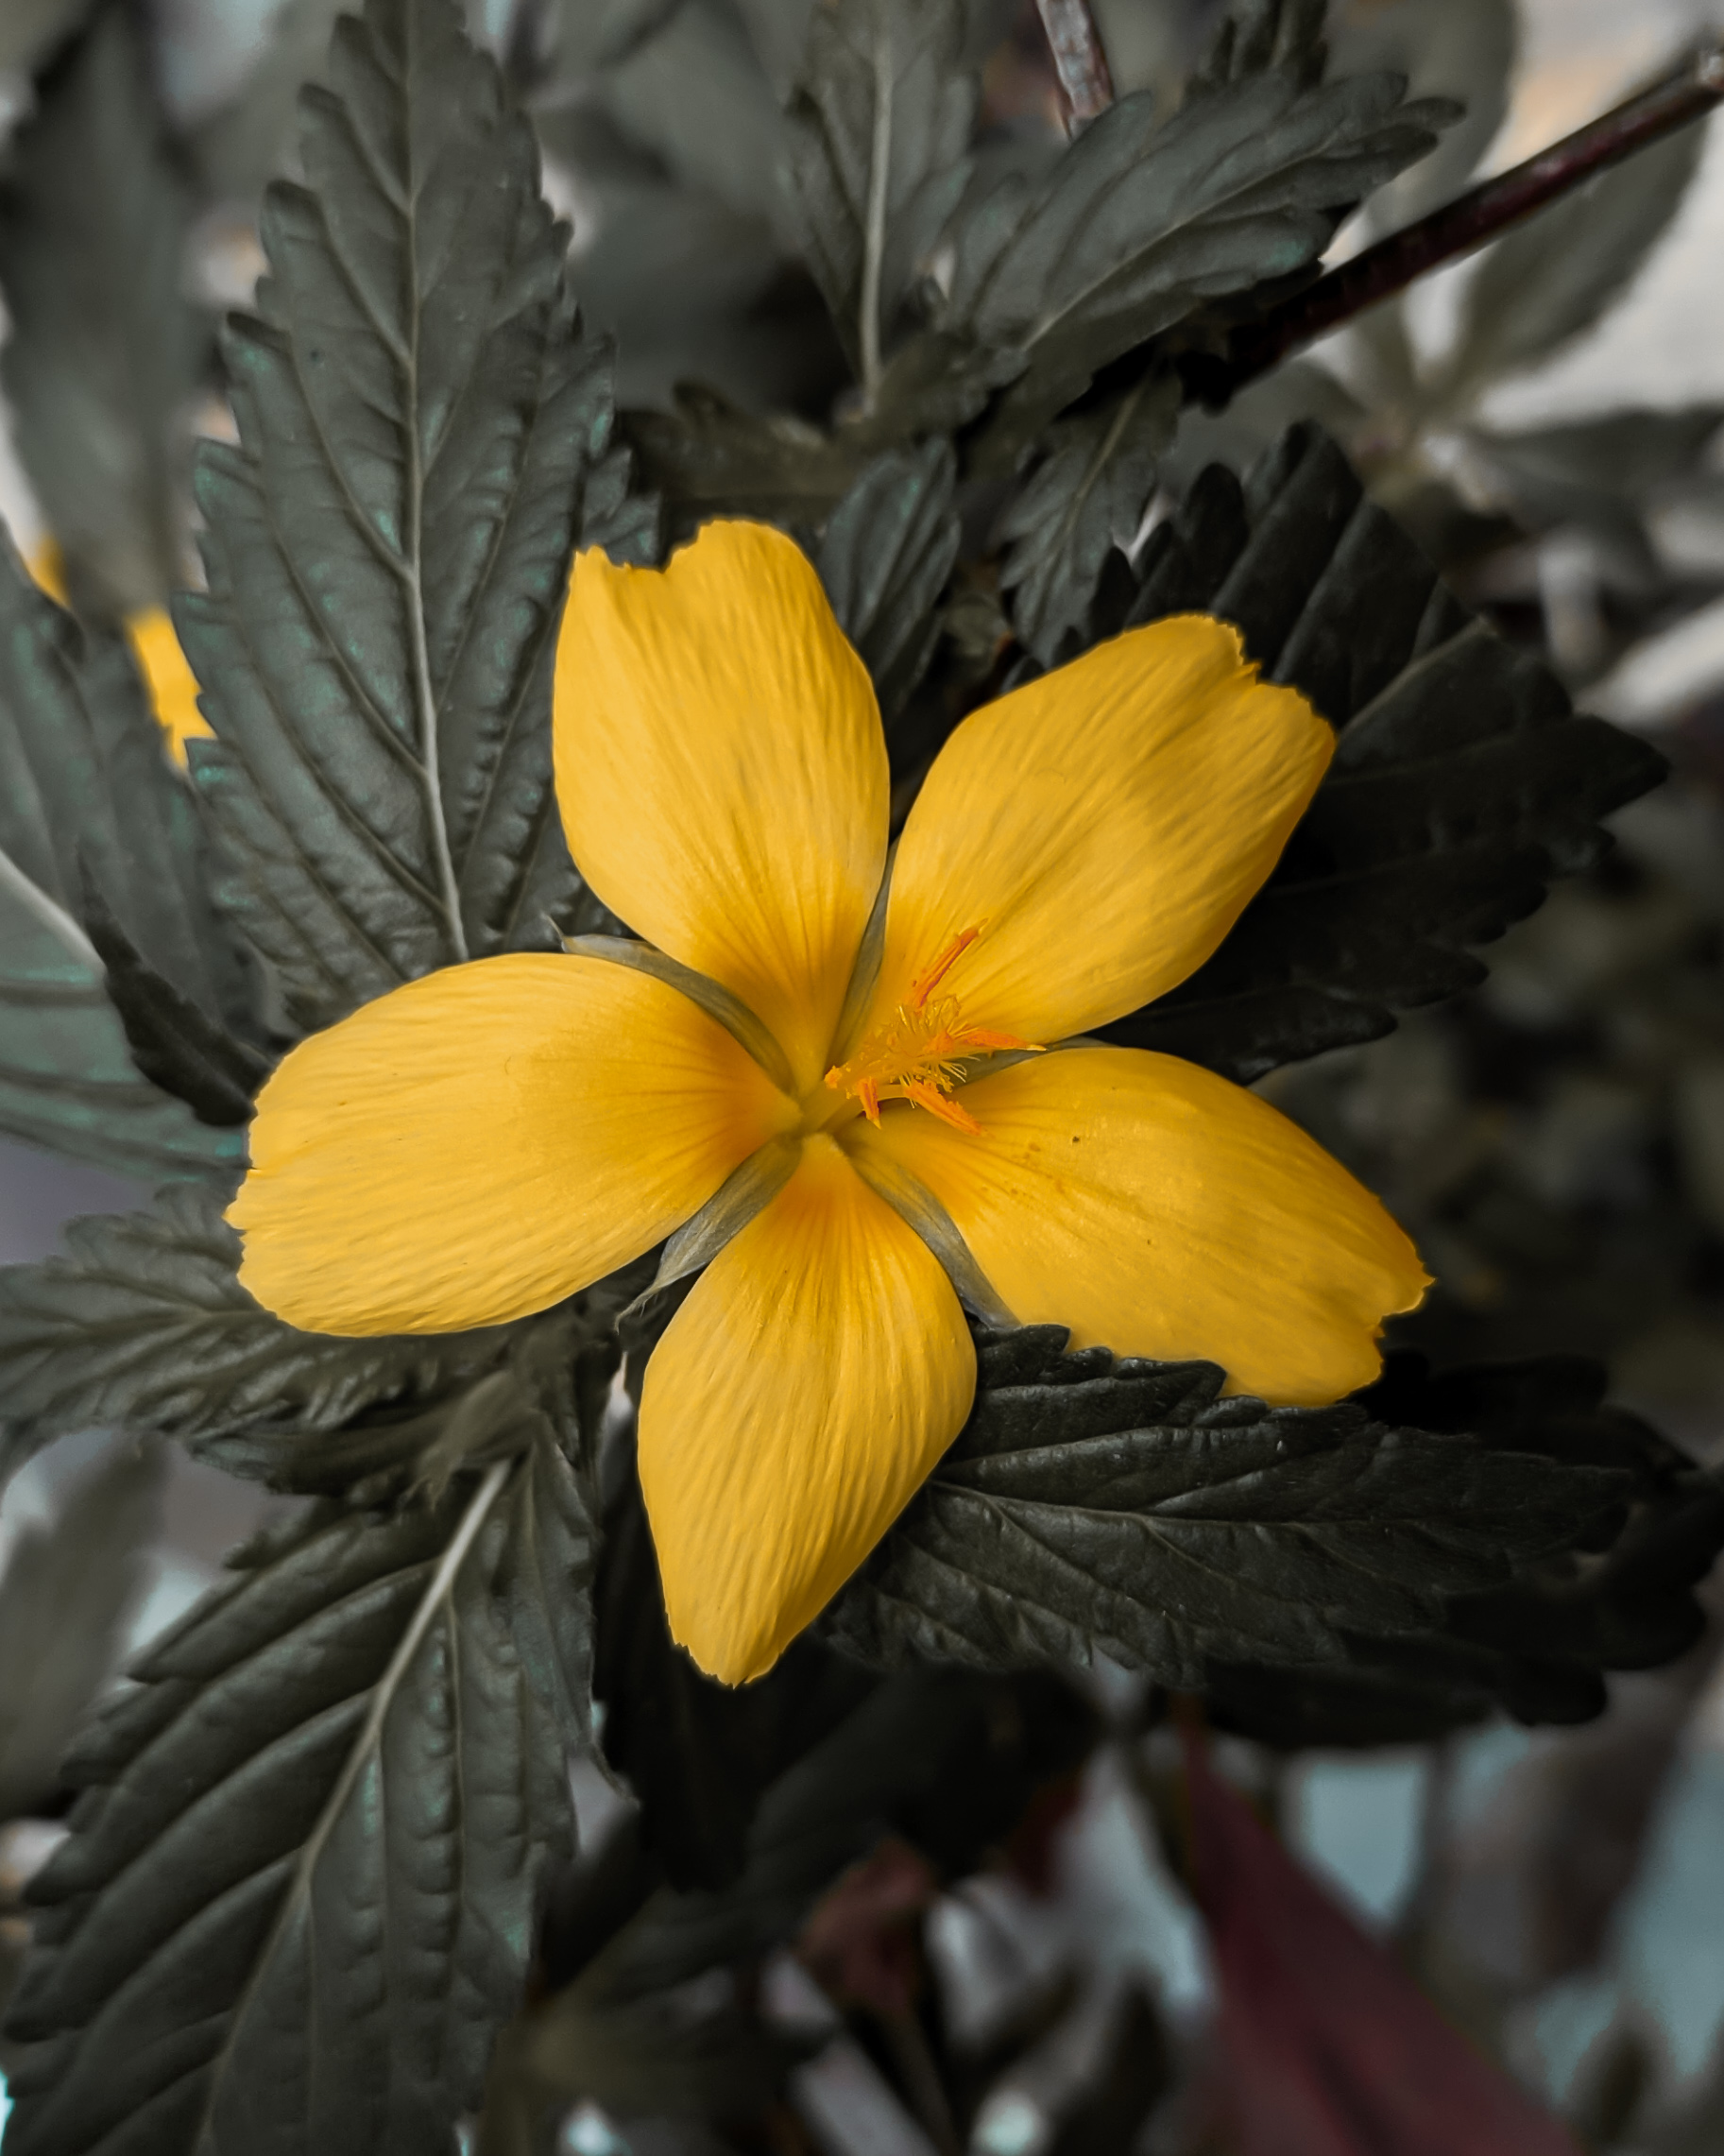 Yellow flower on plant